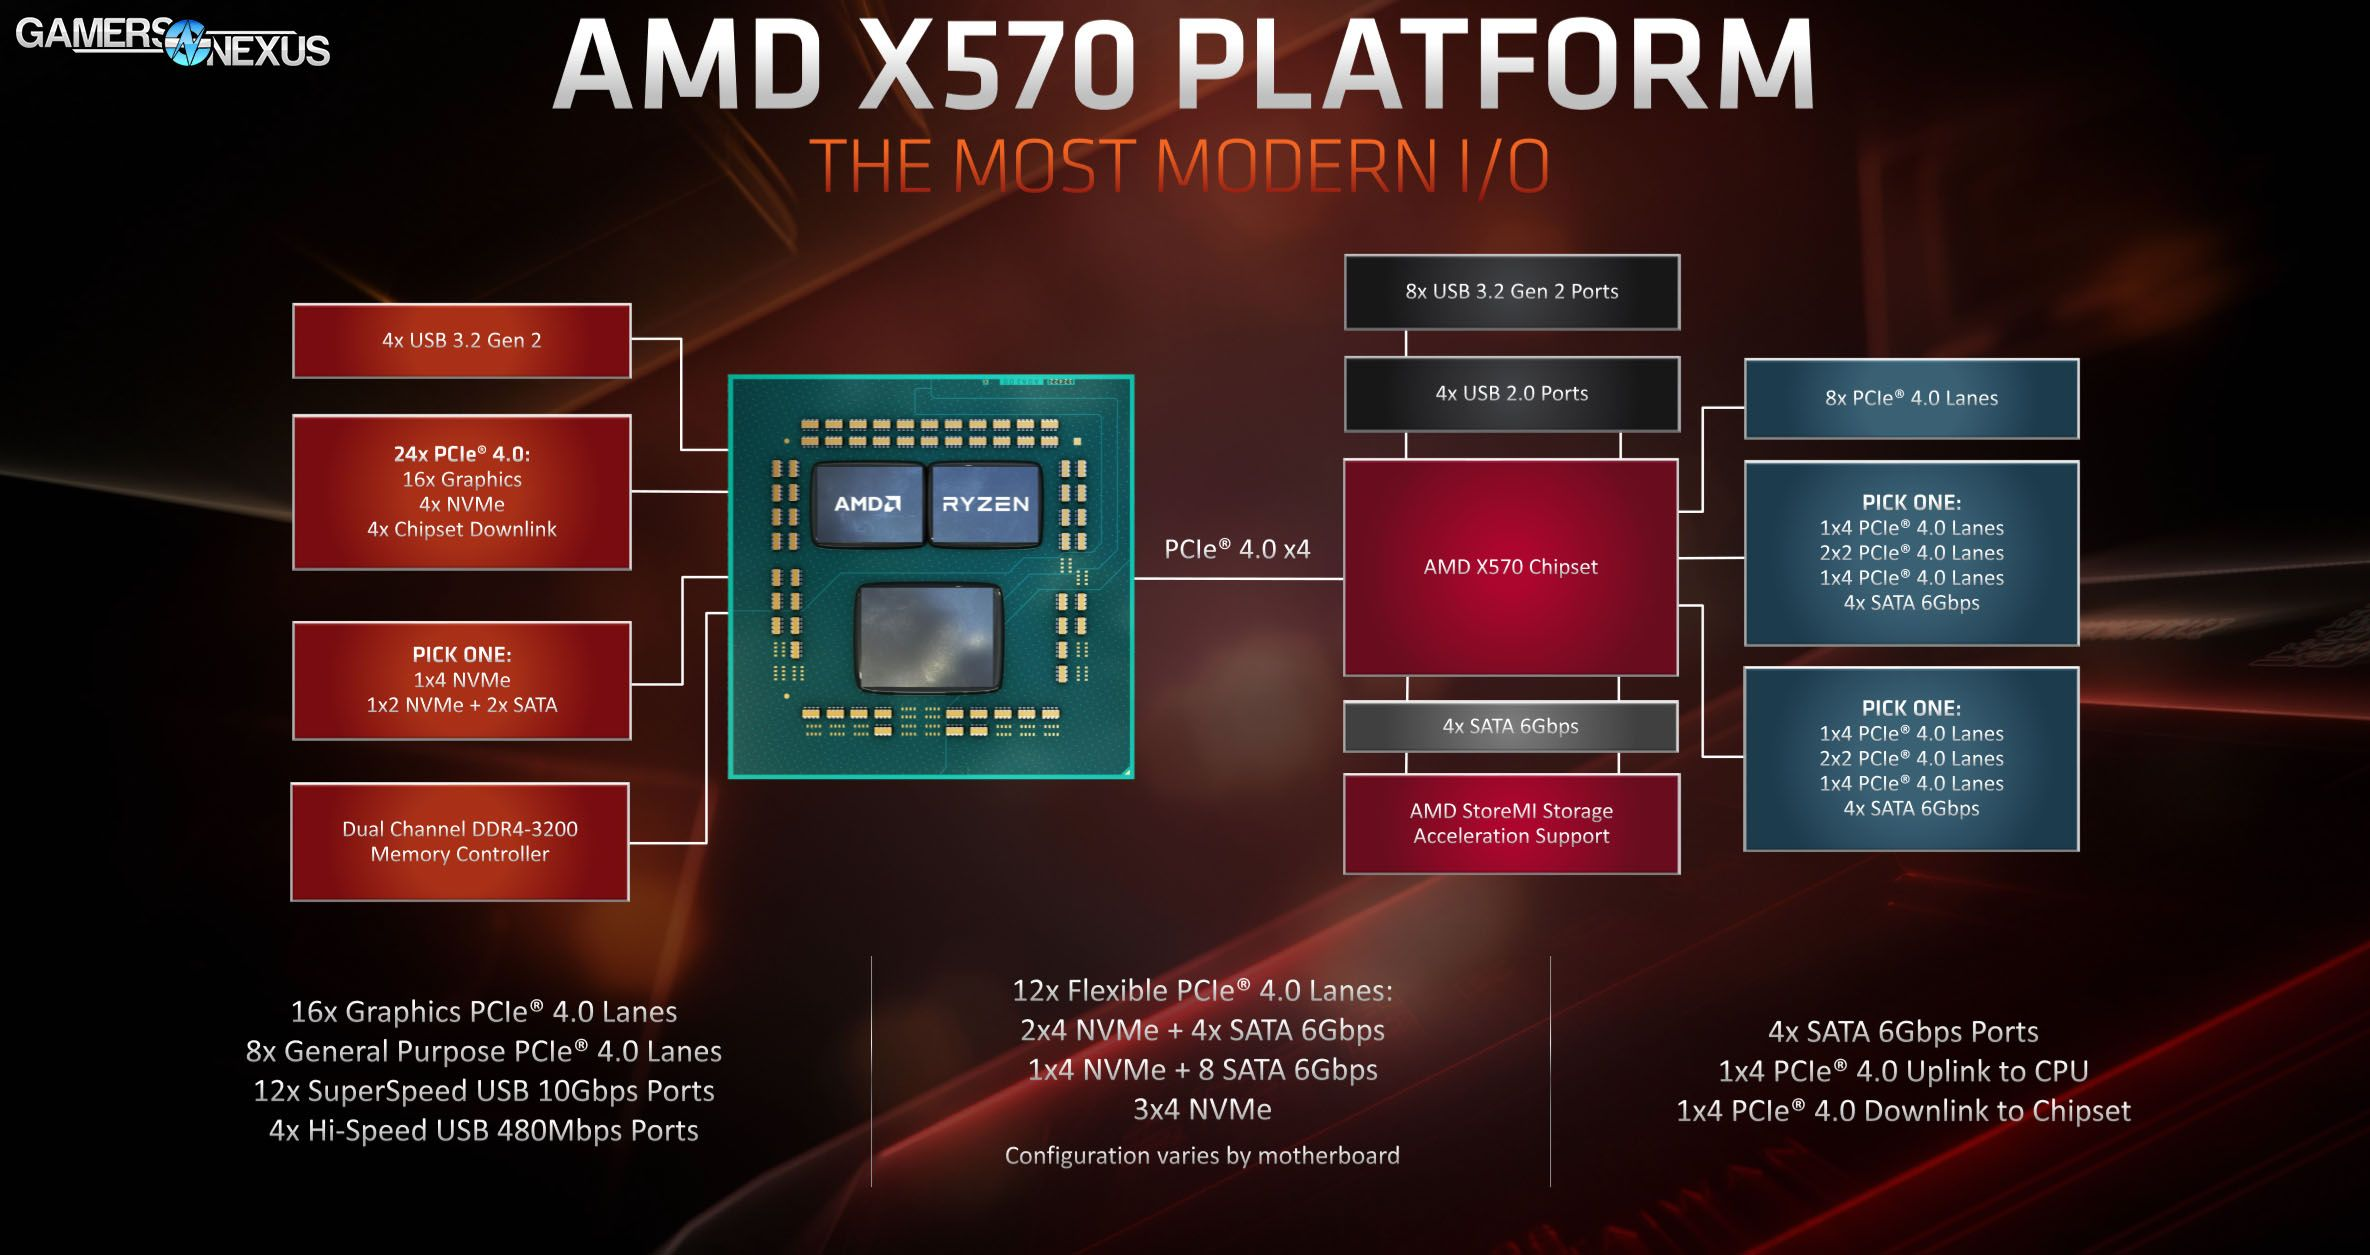 Amd X570 Vs X470 X370 Chipset Comparison Lanes Specs Differences Gamersnexus Epic Games Breaking News Today Amd